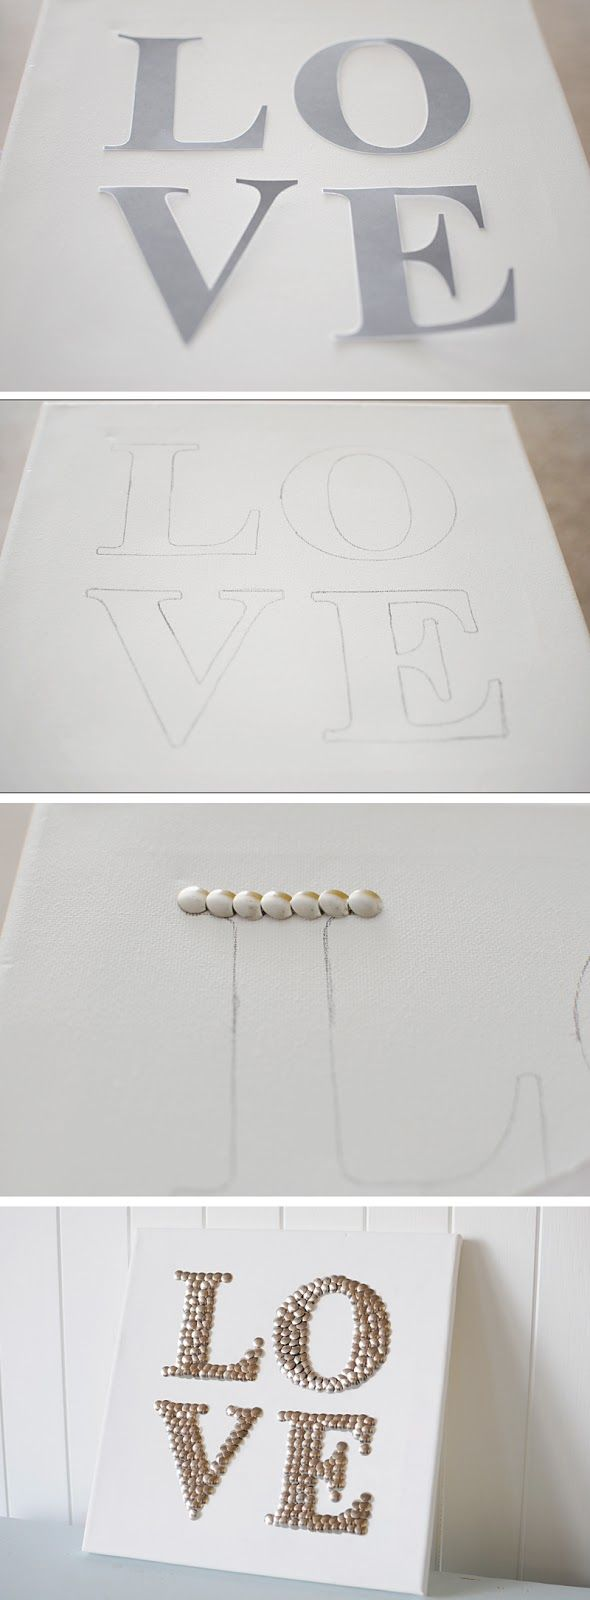 The Jones Way...: Bling Push Pin Art Maar dan de letters met lijm omtrekken en de plaat kleuren